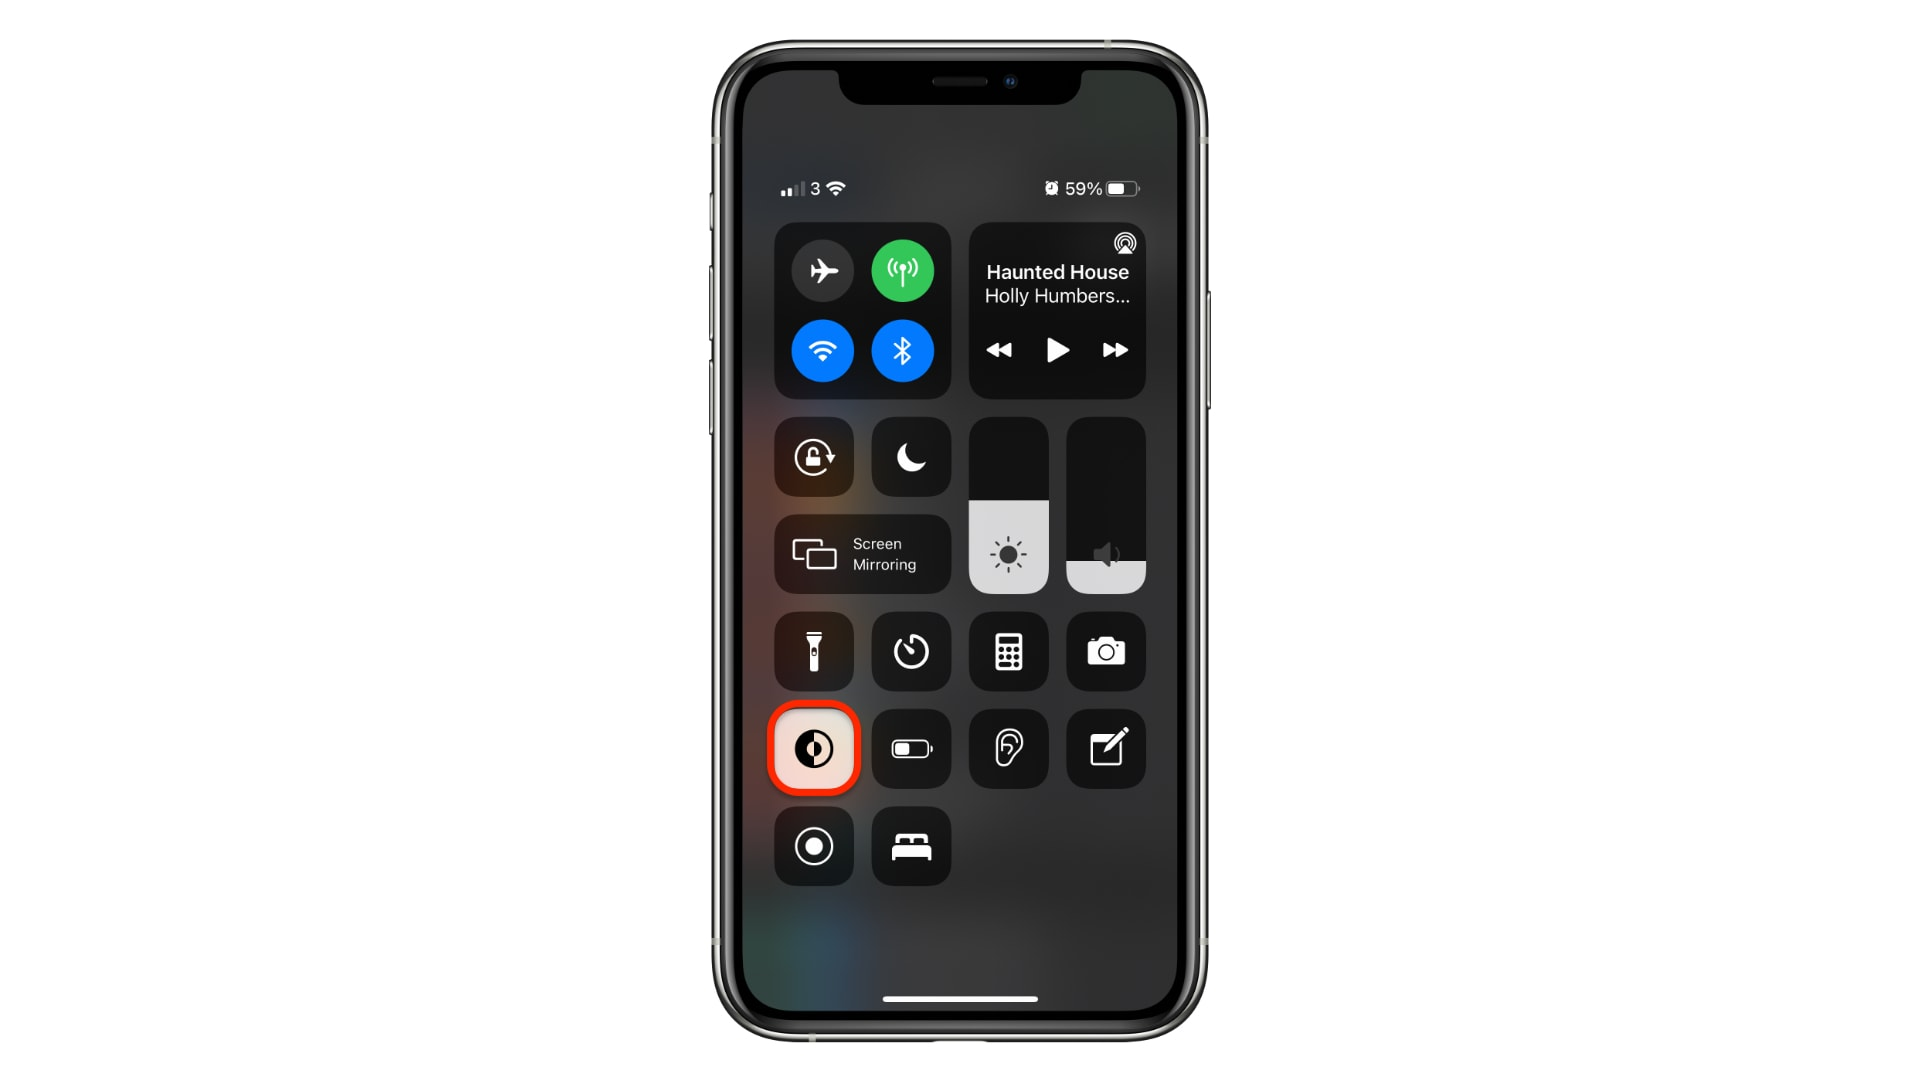 Dark Mode toggle in Control Center on iPhone